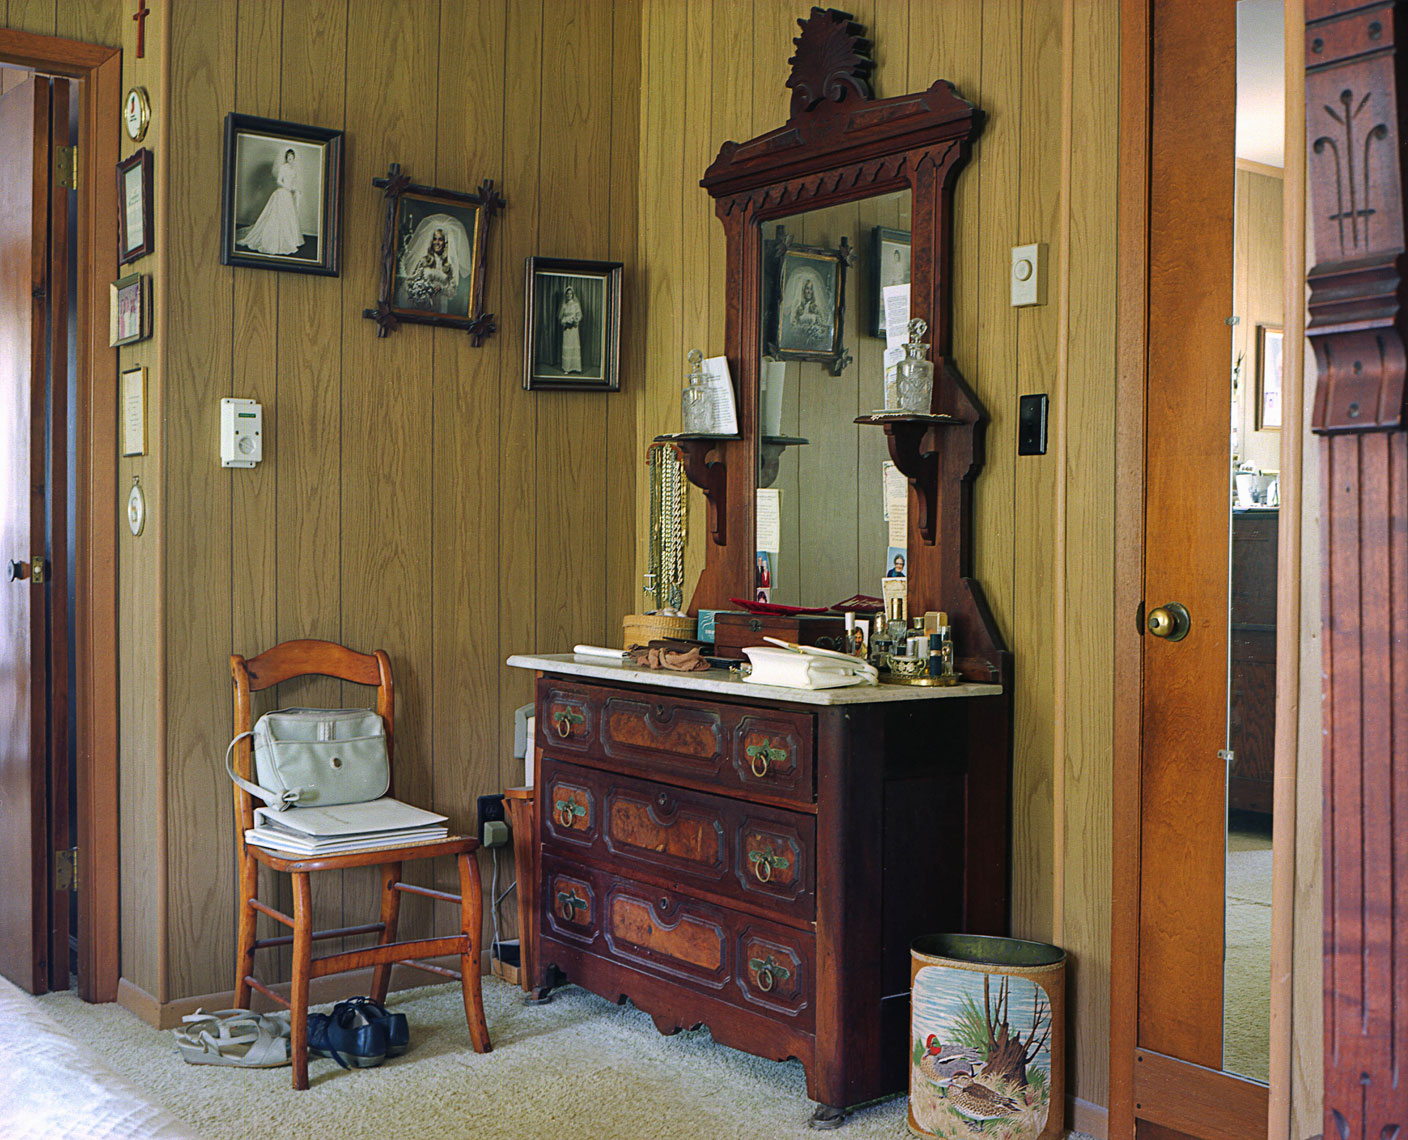 Granny_bedroom_dresser